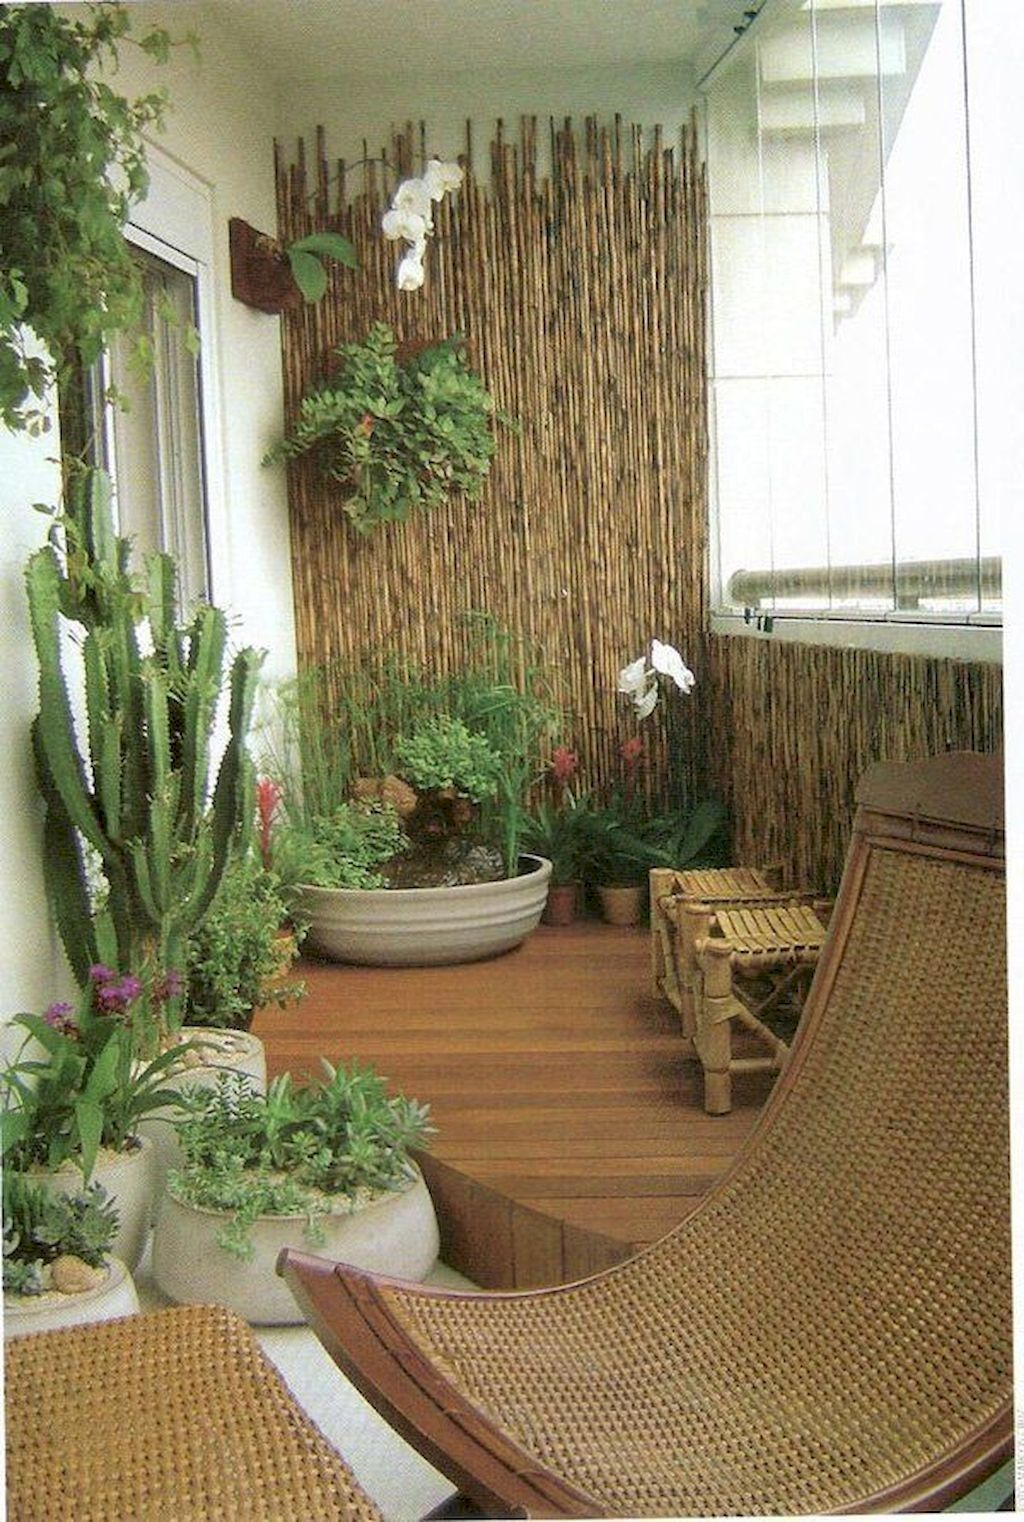 33 Apartment Balcony Garden Ideas That You Will Love: Pin By Home Design Ideas On Apartment In 2019